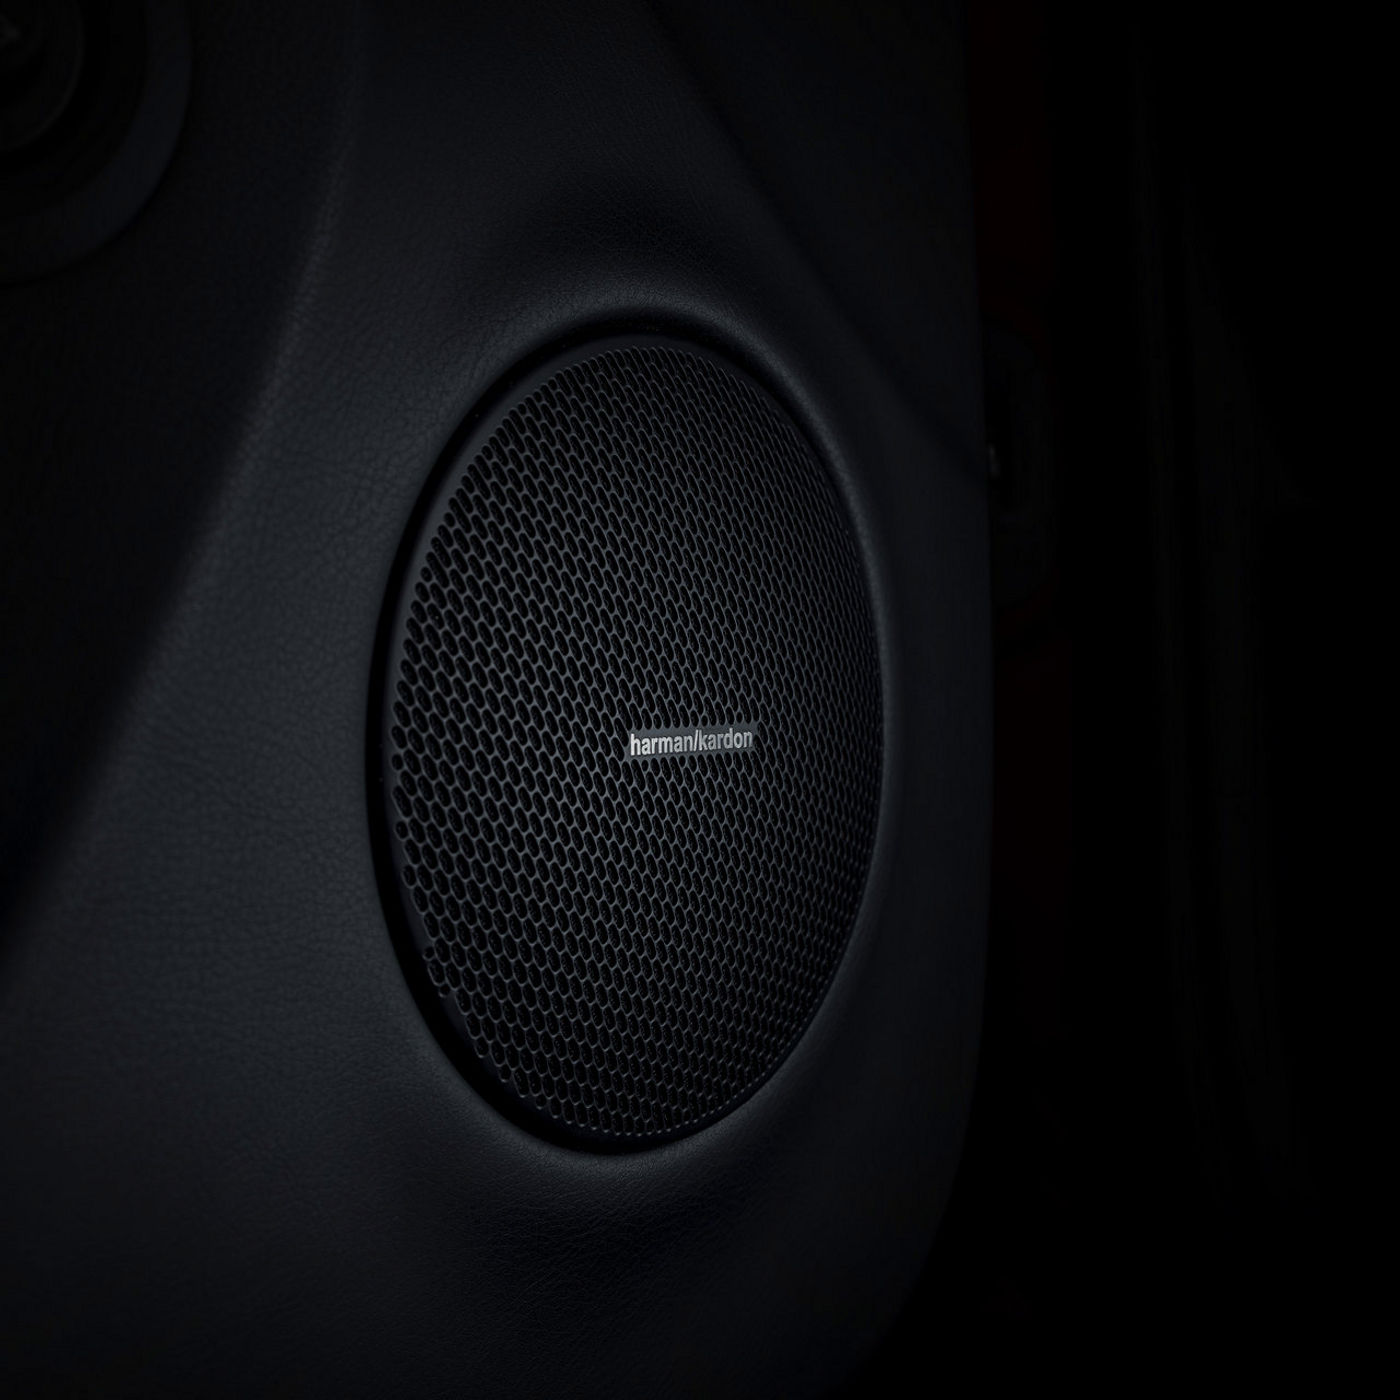 Premium car sound system Harman Kardon on Maserati GranTurismo